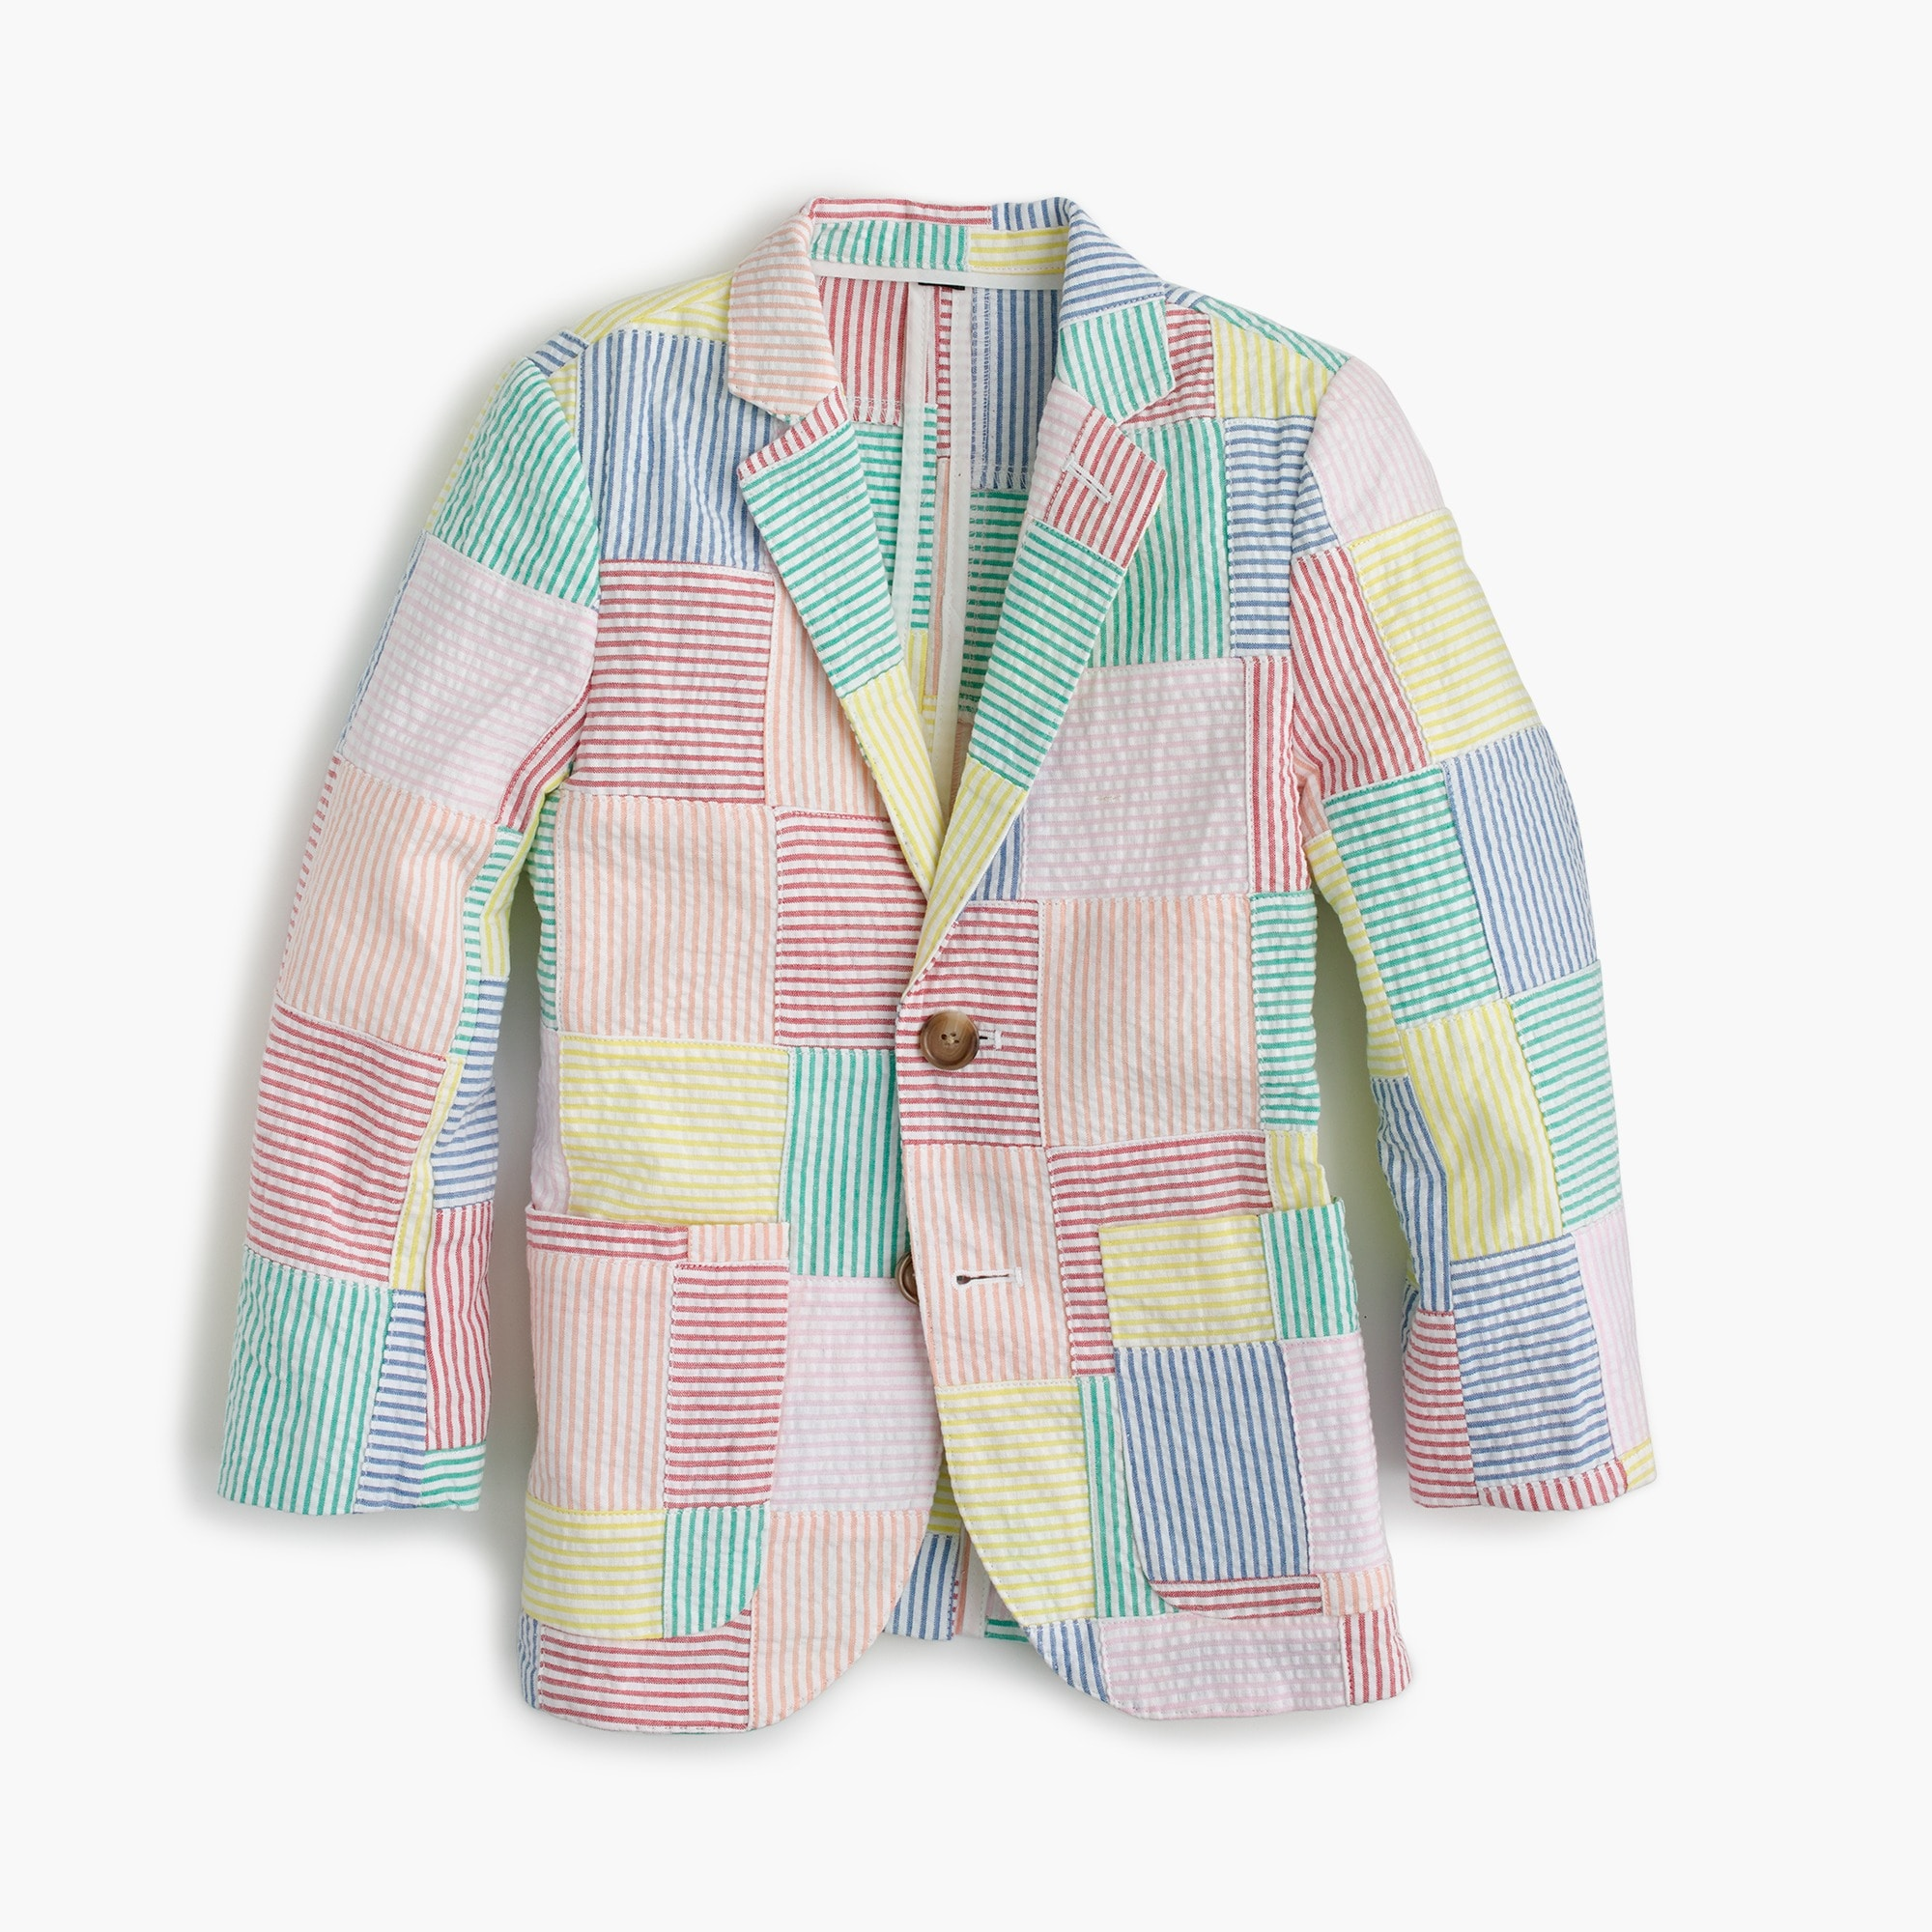 Boys' Ludlow blazer in patchwork seersucker